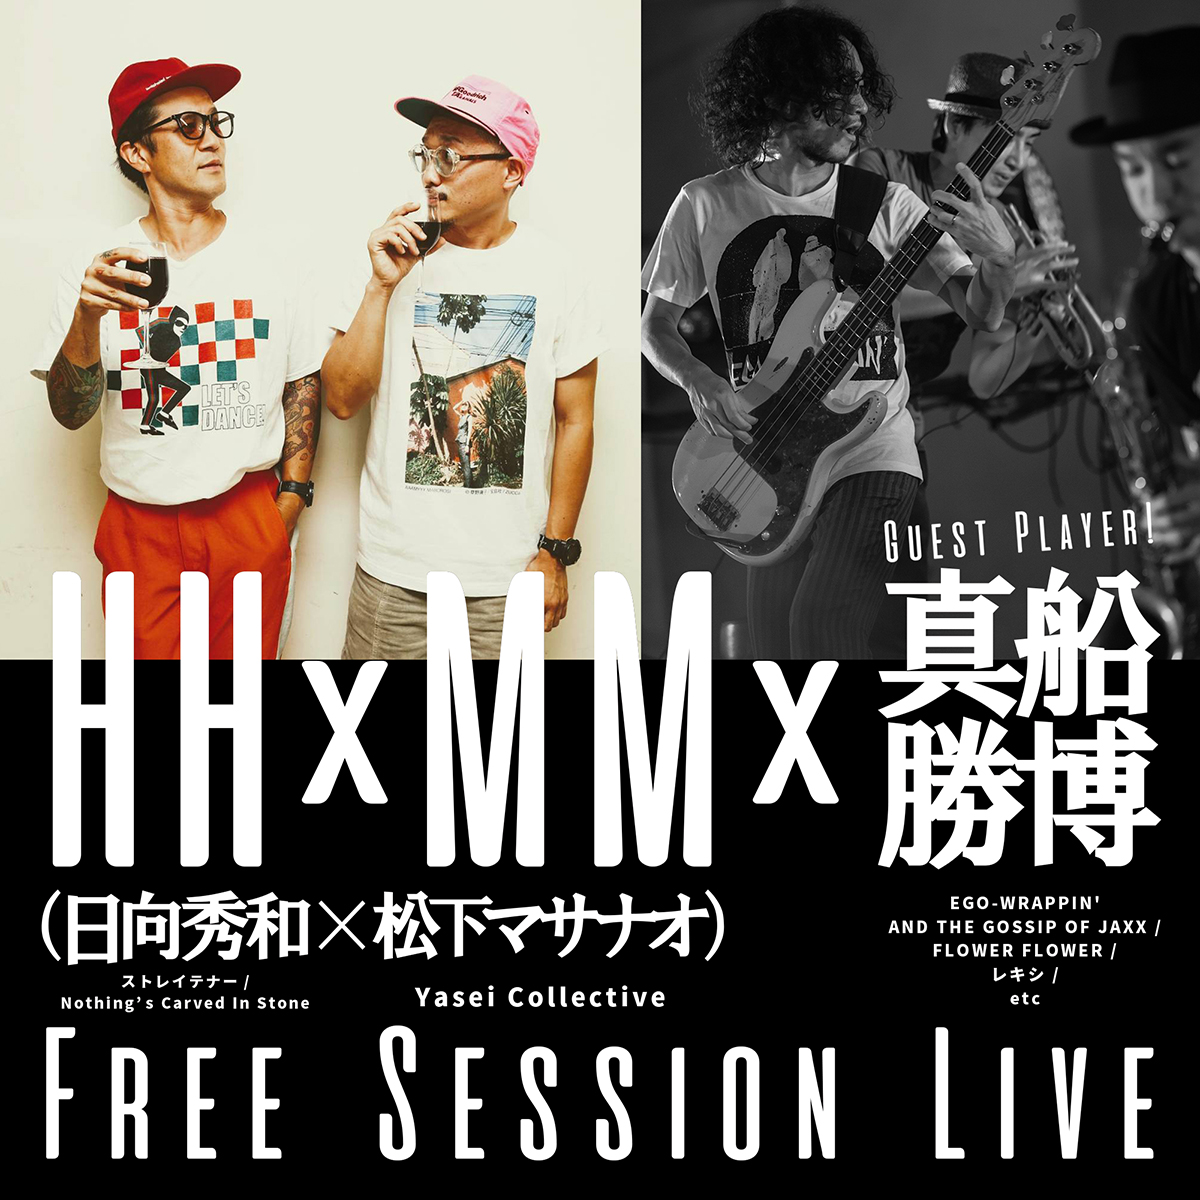 HH×MM(日向秀和×松下マサナオ)Free Session Live / Guest Player : 真船勝博【GRANDEY BASS TOKYO Presents】